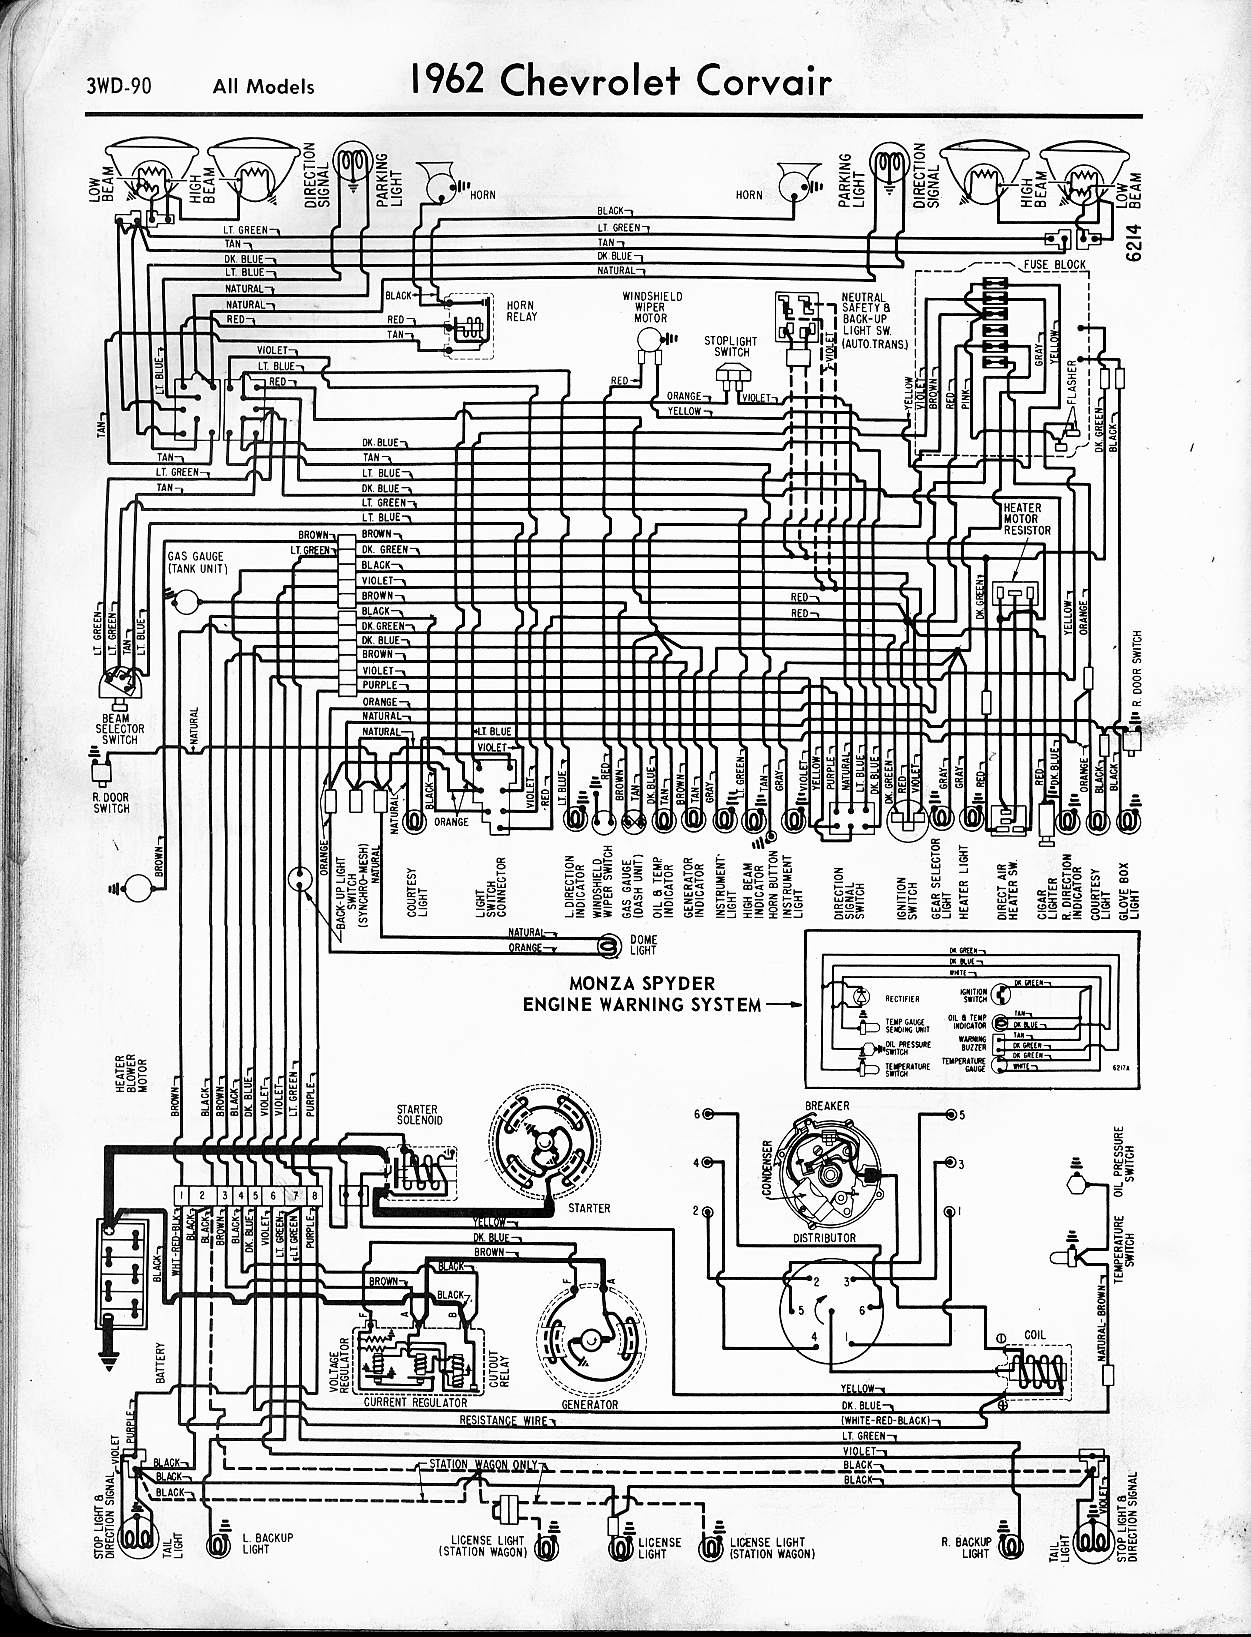 1966 Chevy Suburban Wiring Diagram Library Dodge Mirror 1964 Chevrolet Corvette On Data